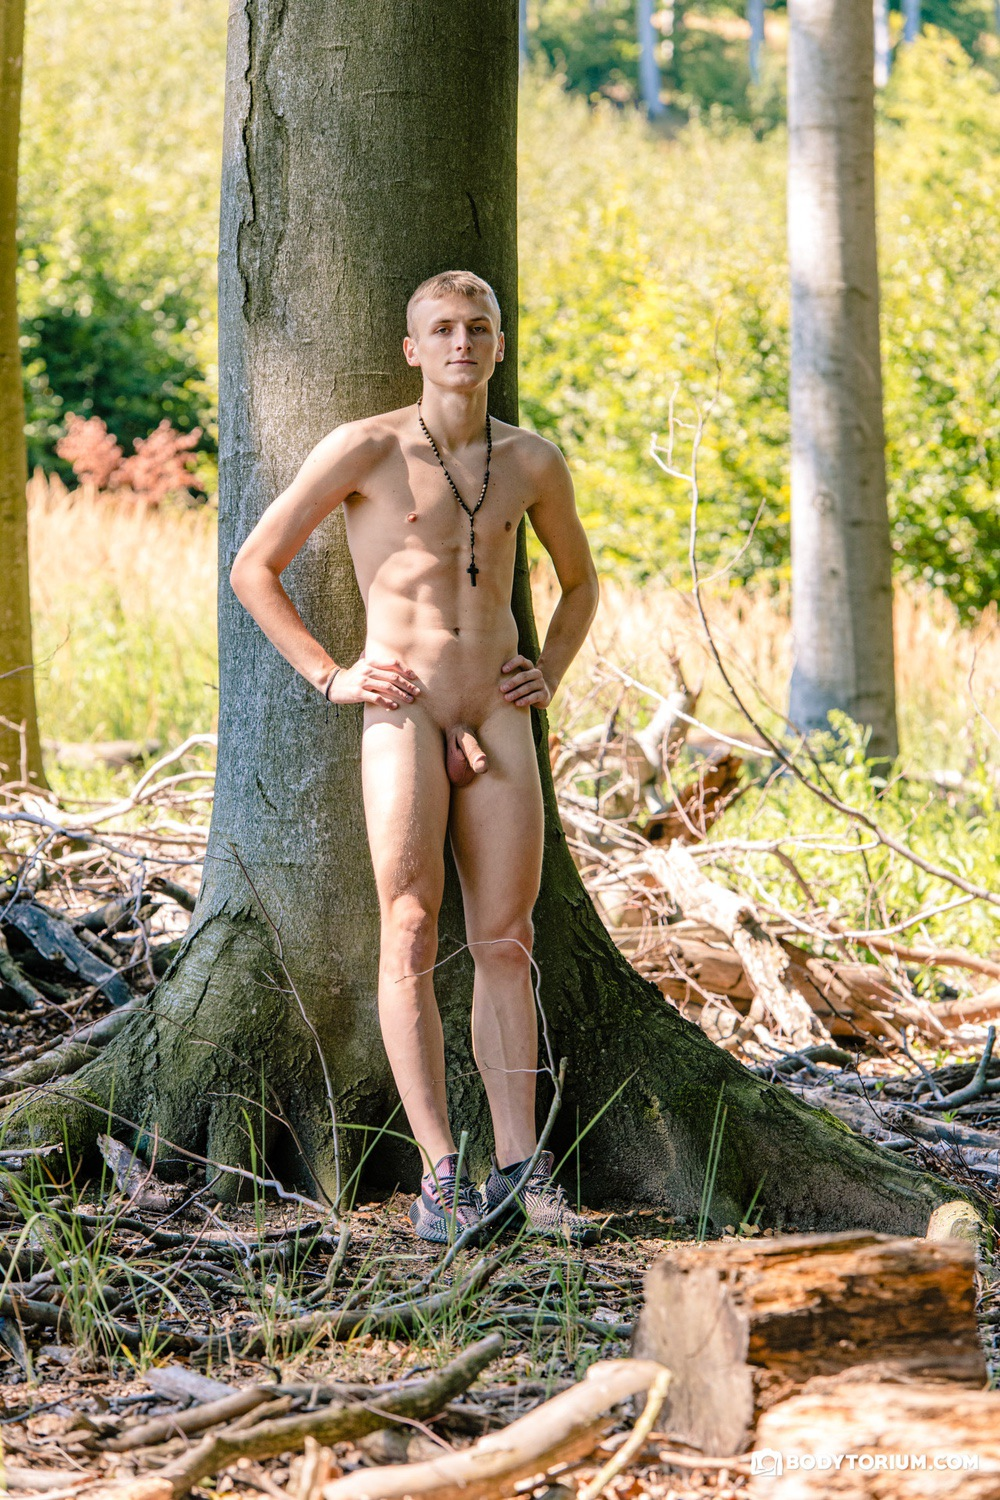 Outdoor male nude photo